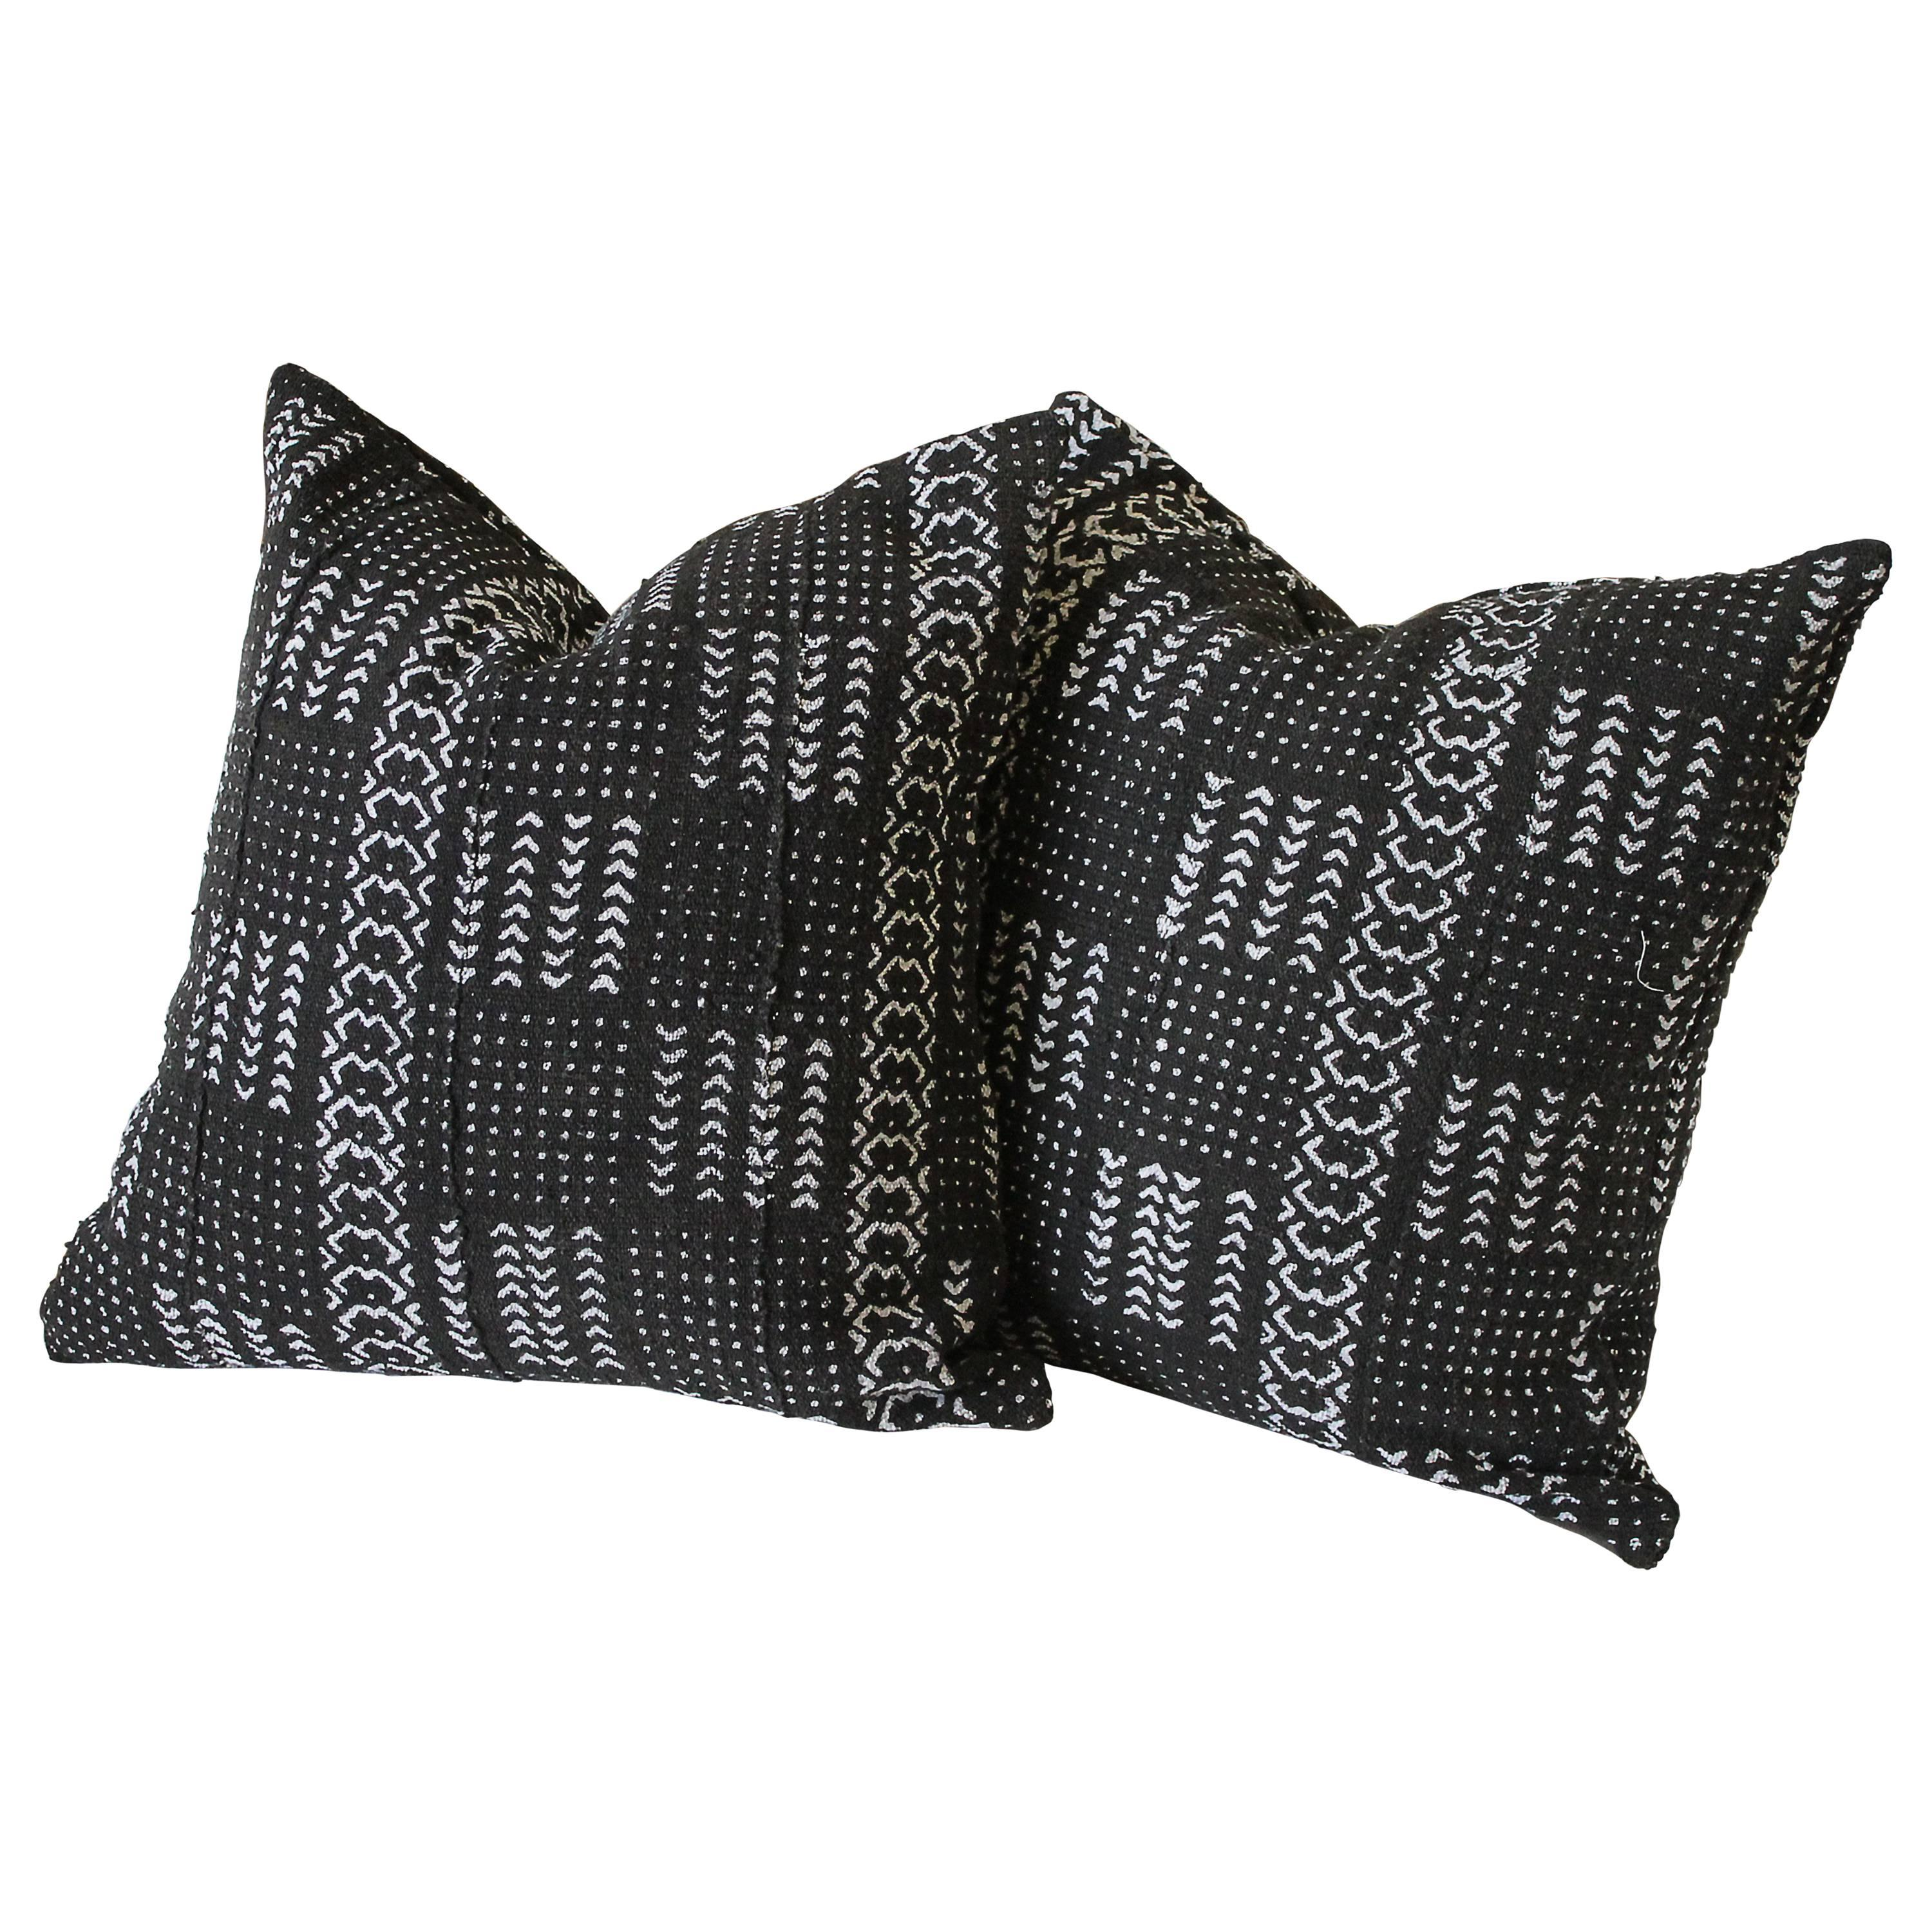 Vintage African Mud Cloth Accent Pillows with Down Insert